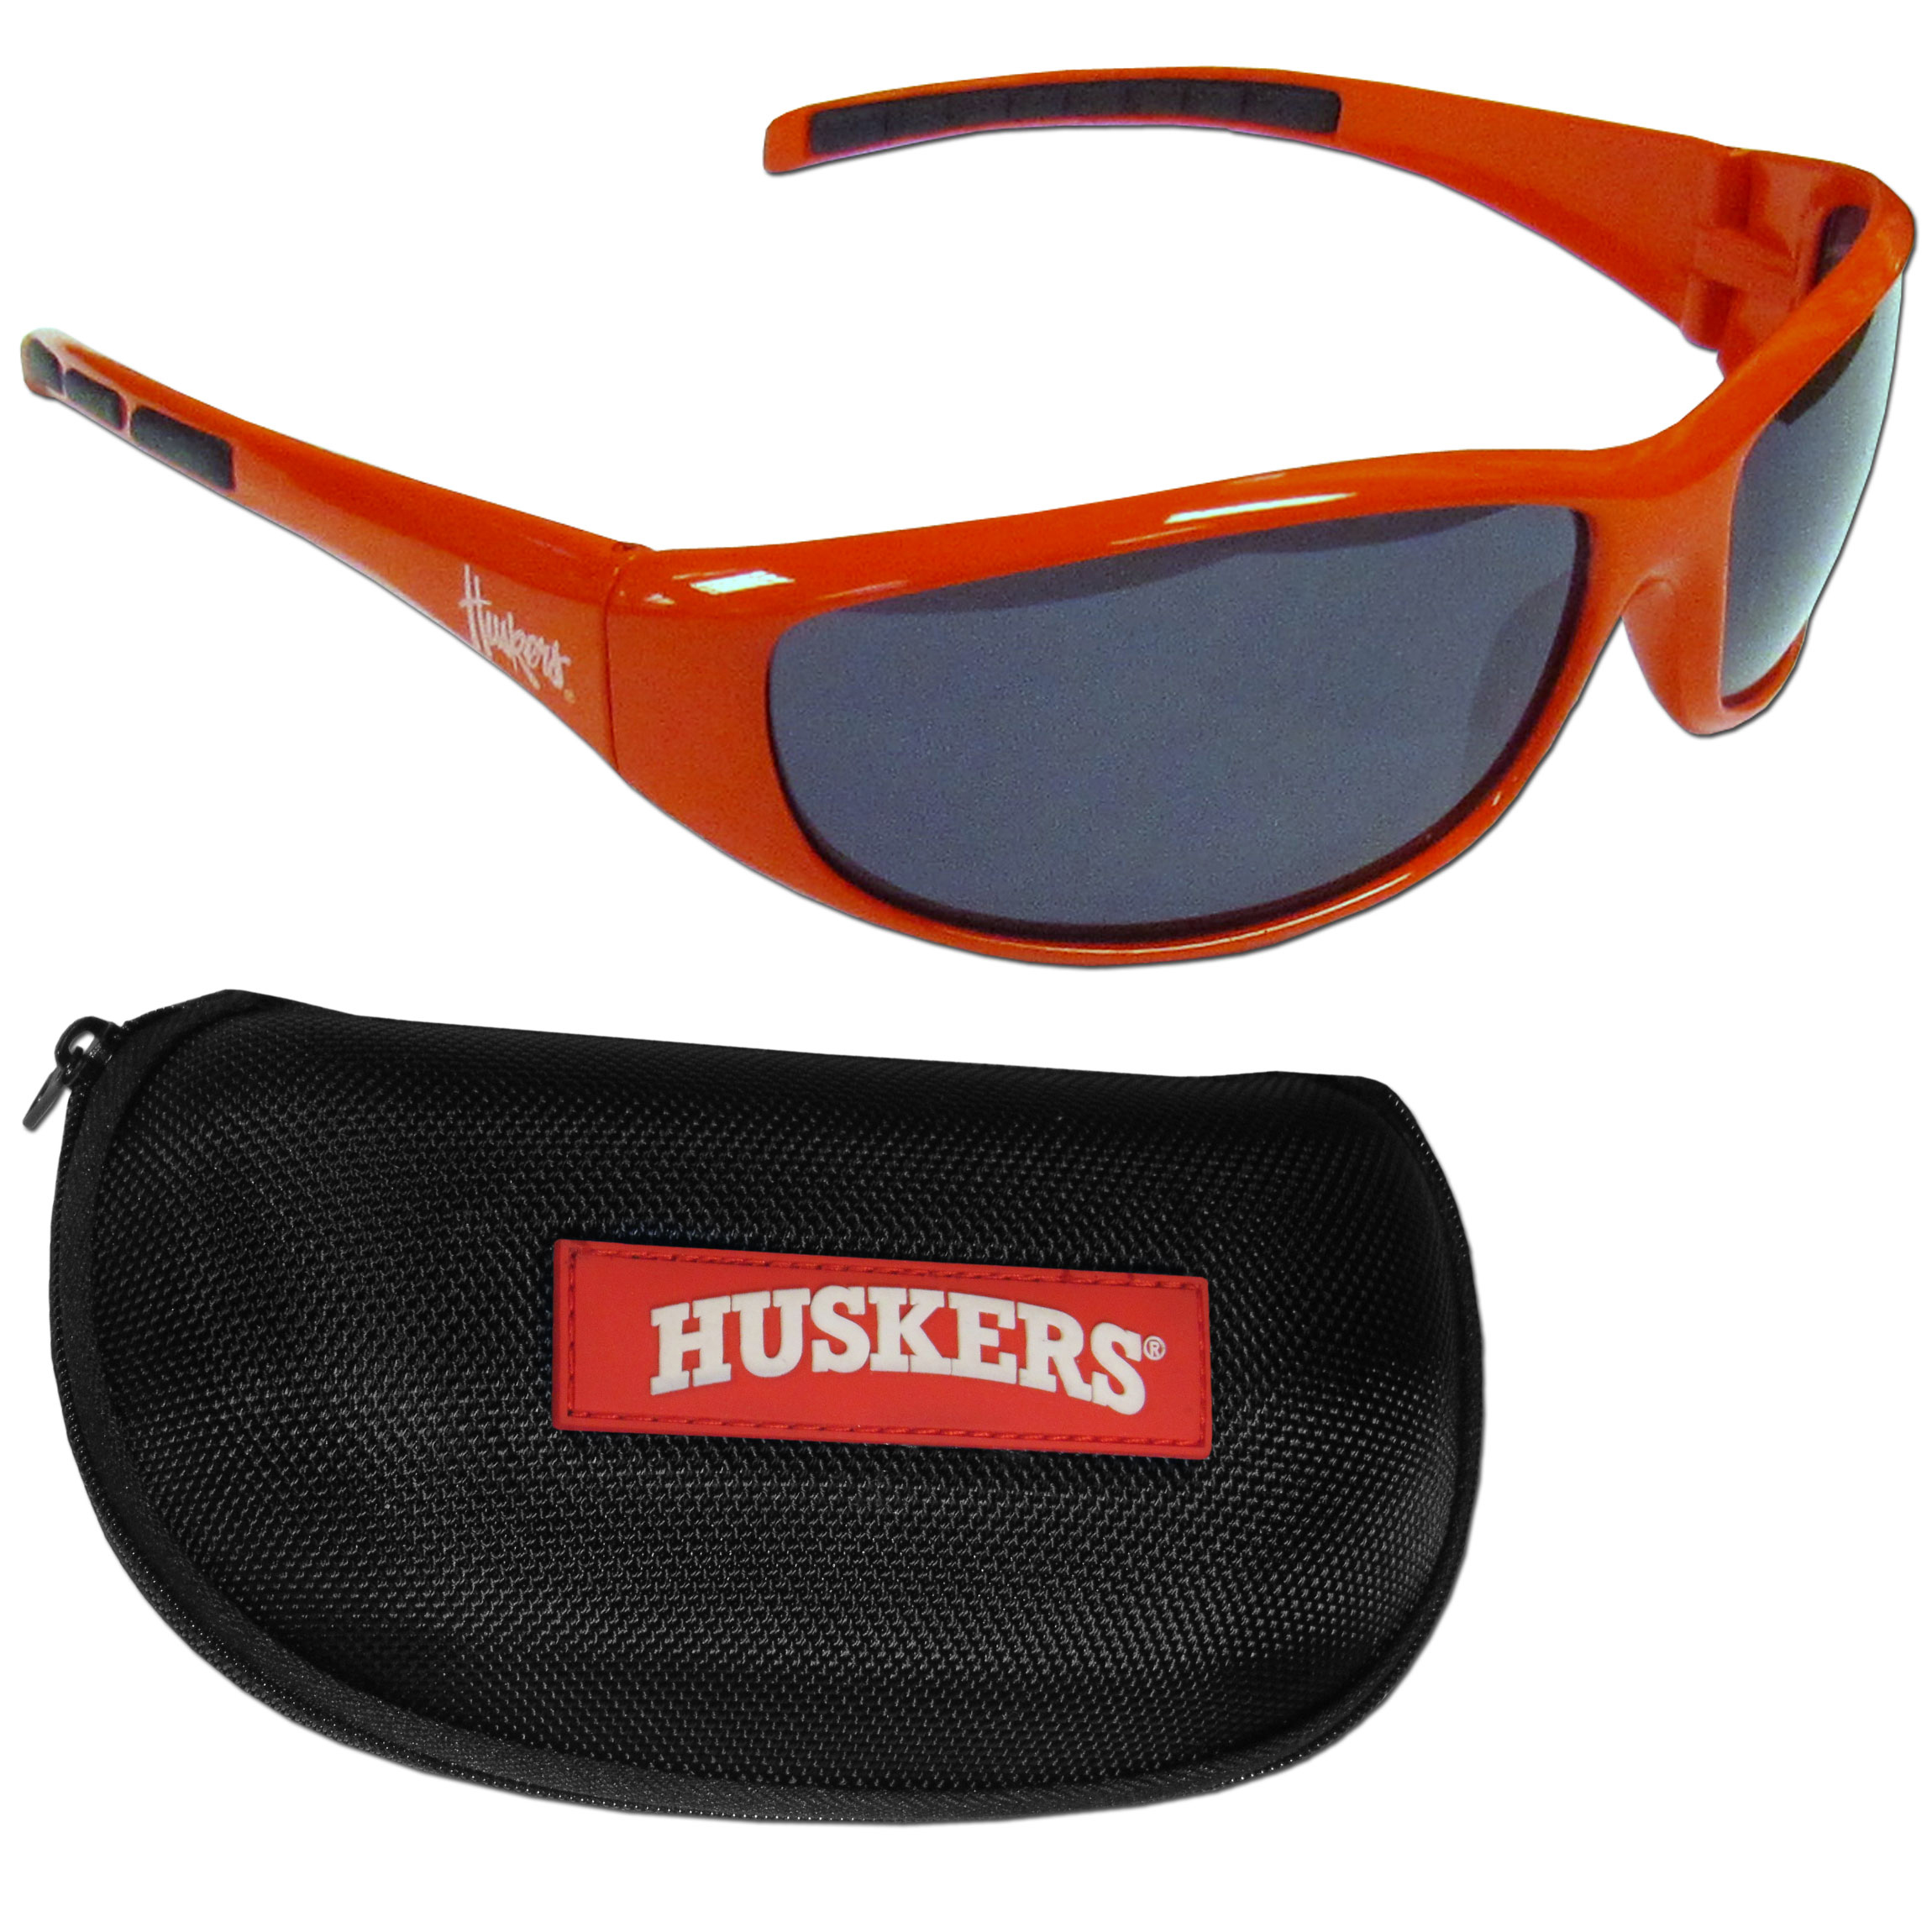 Nebraska Cornhuskers Wrap Sunglass and Case Set - This great set includes a high quality pair of Nebraska Cornhuskers wrap sunglasses and hard carrying case.